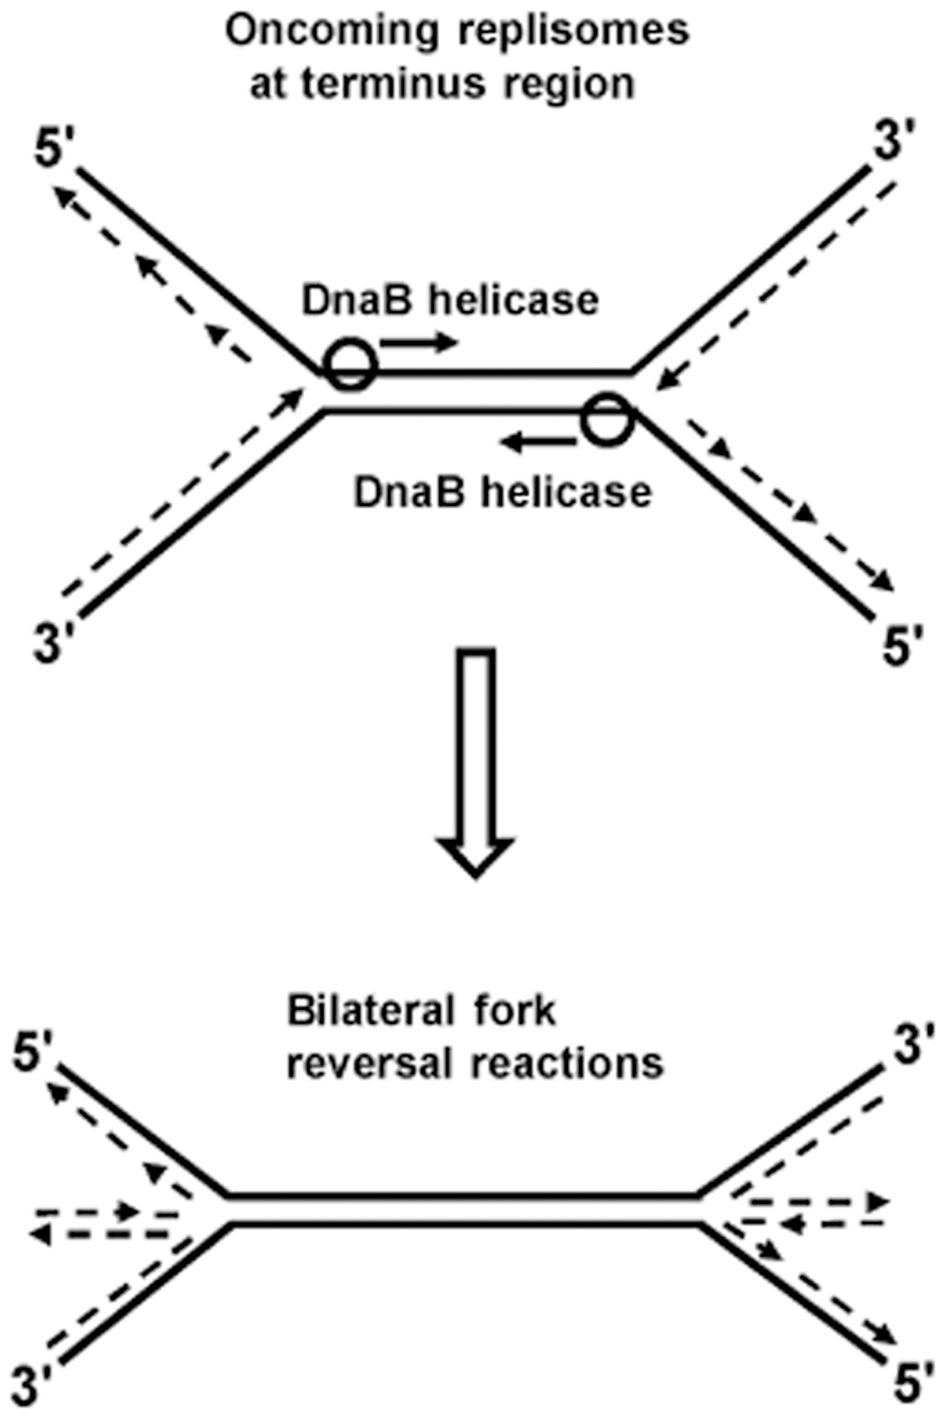 Model of bilateral fork reversal reaction at a site where oncoming replisomes meet during replication termination.